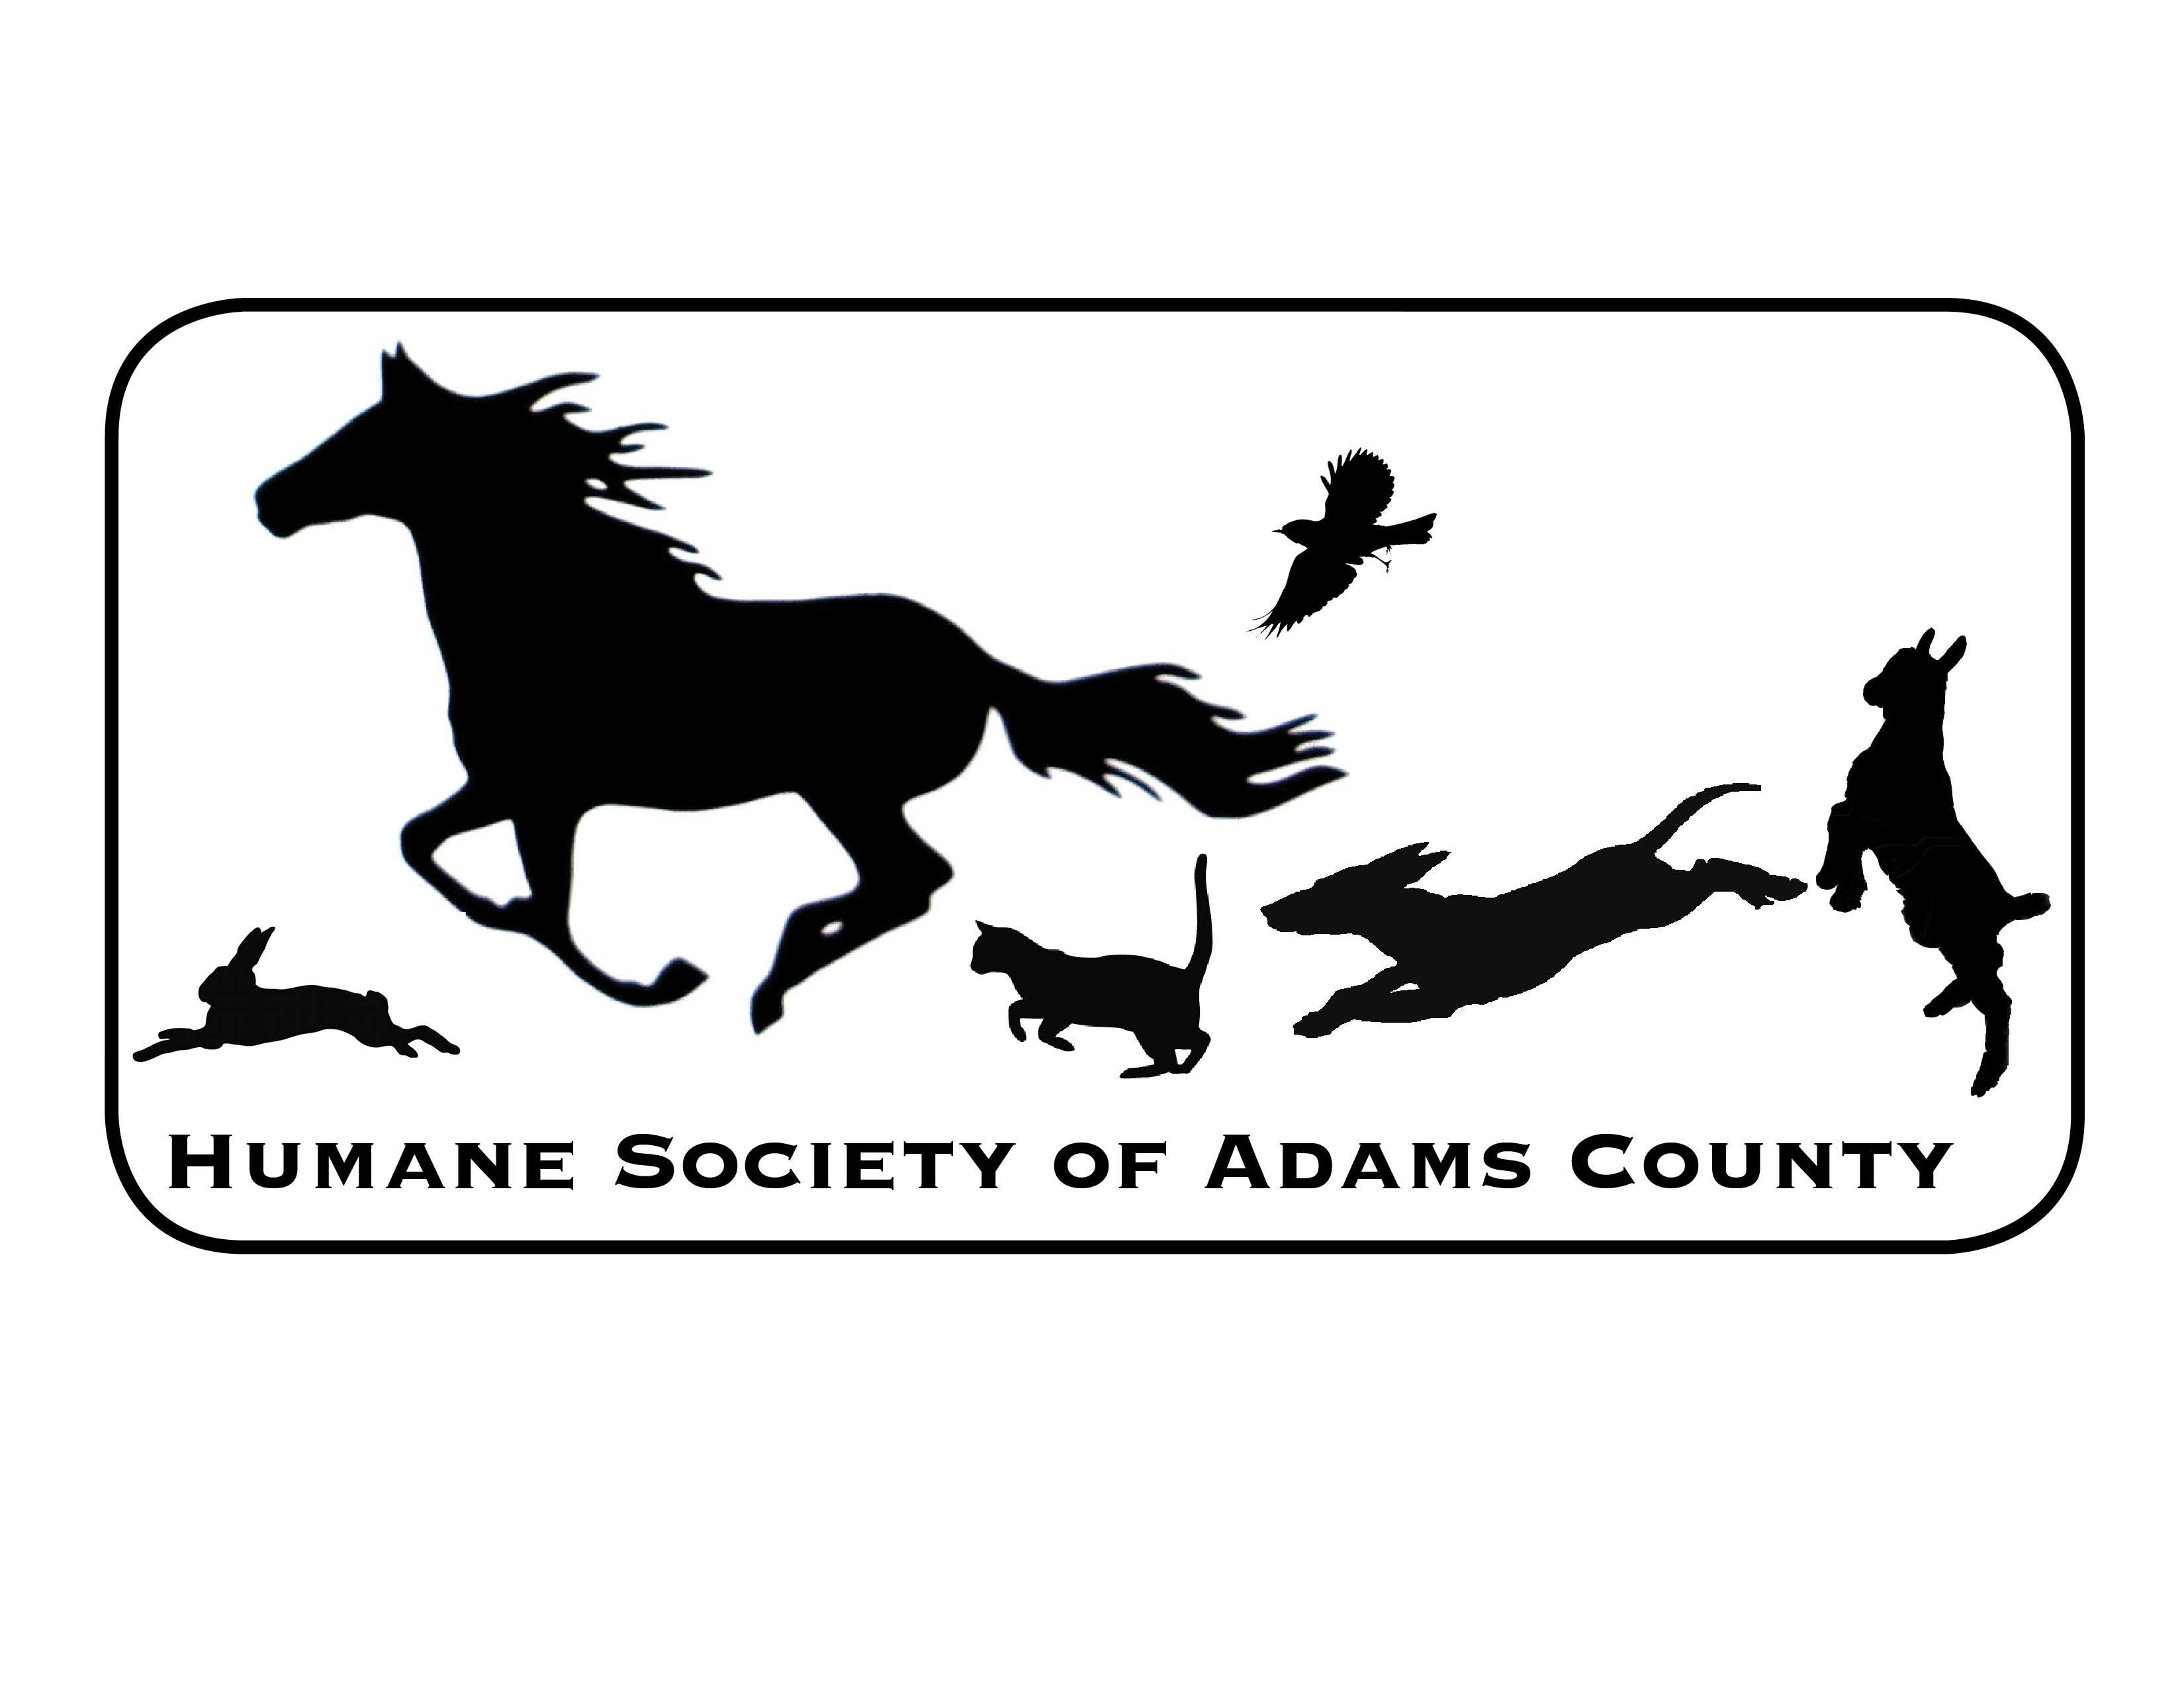 Humane Society of Adams County Inc.